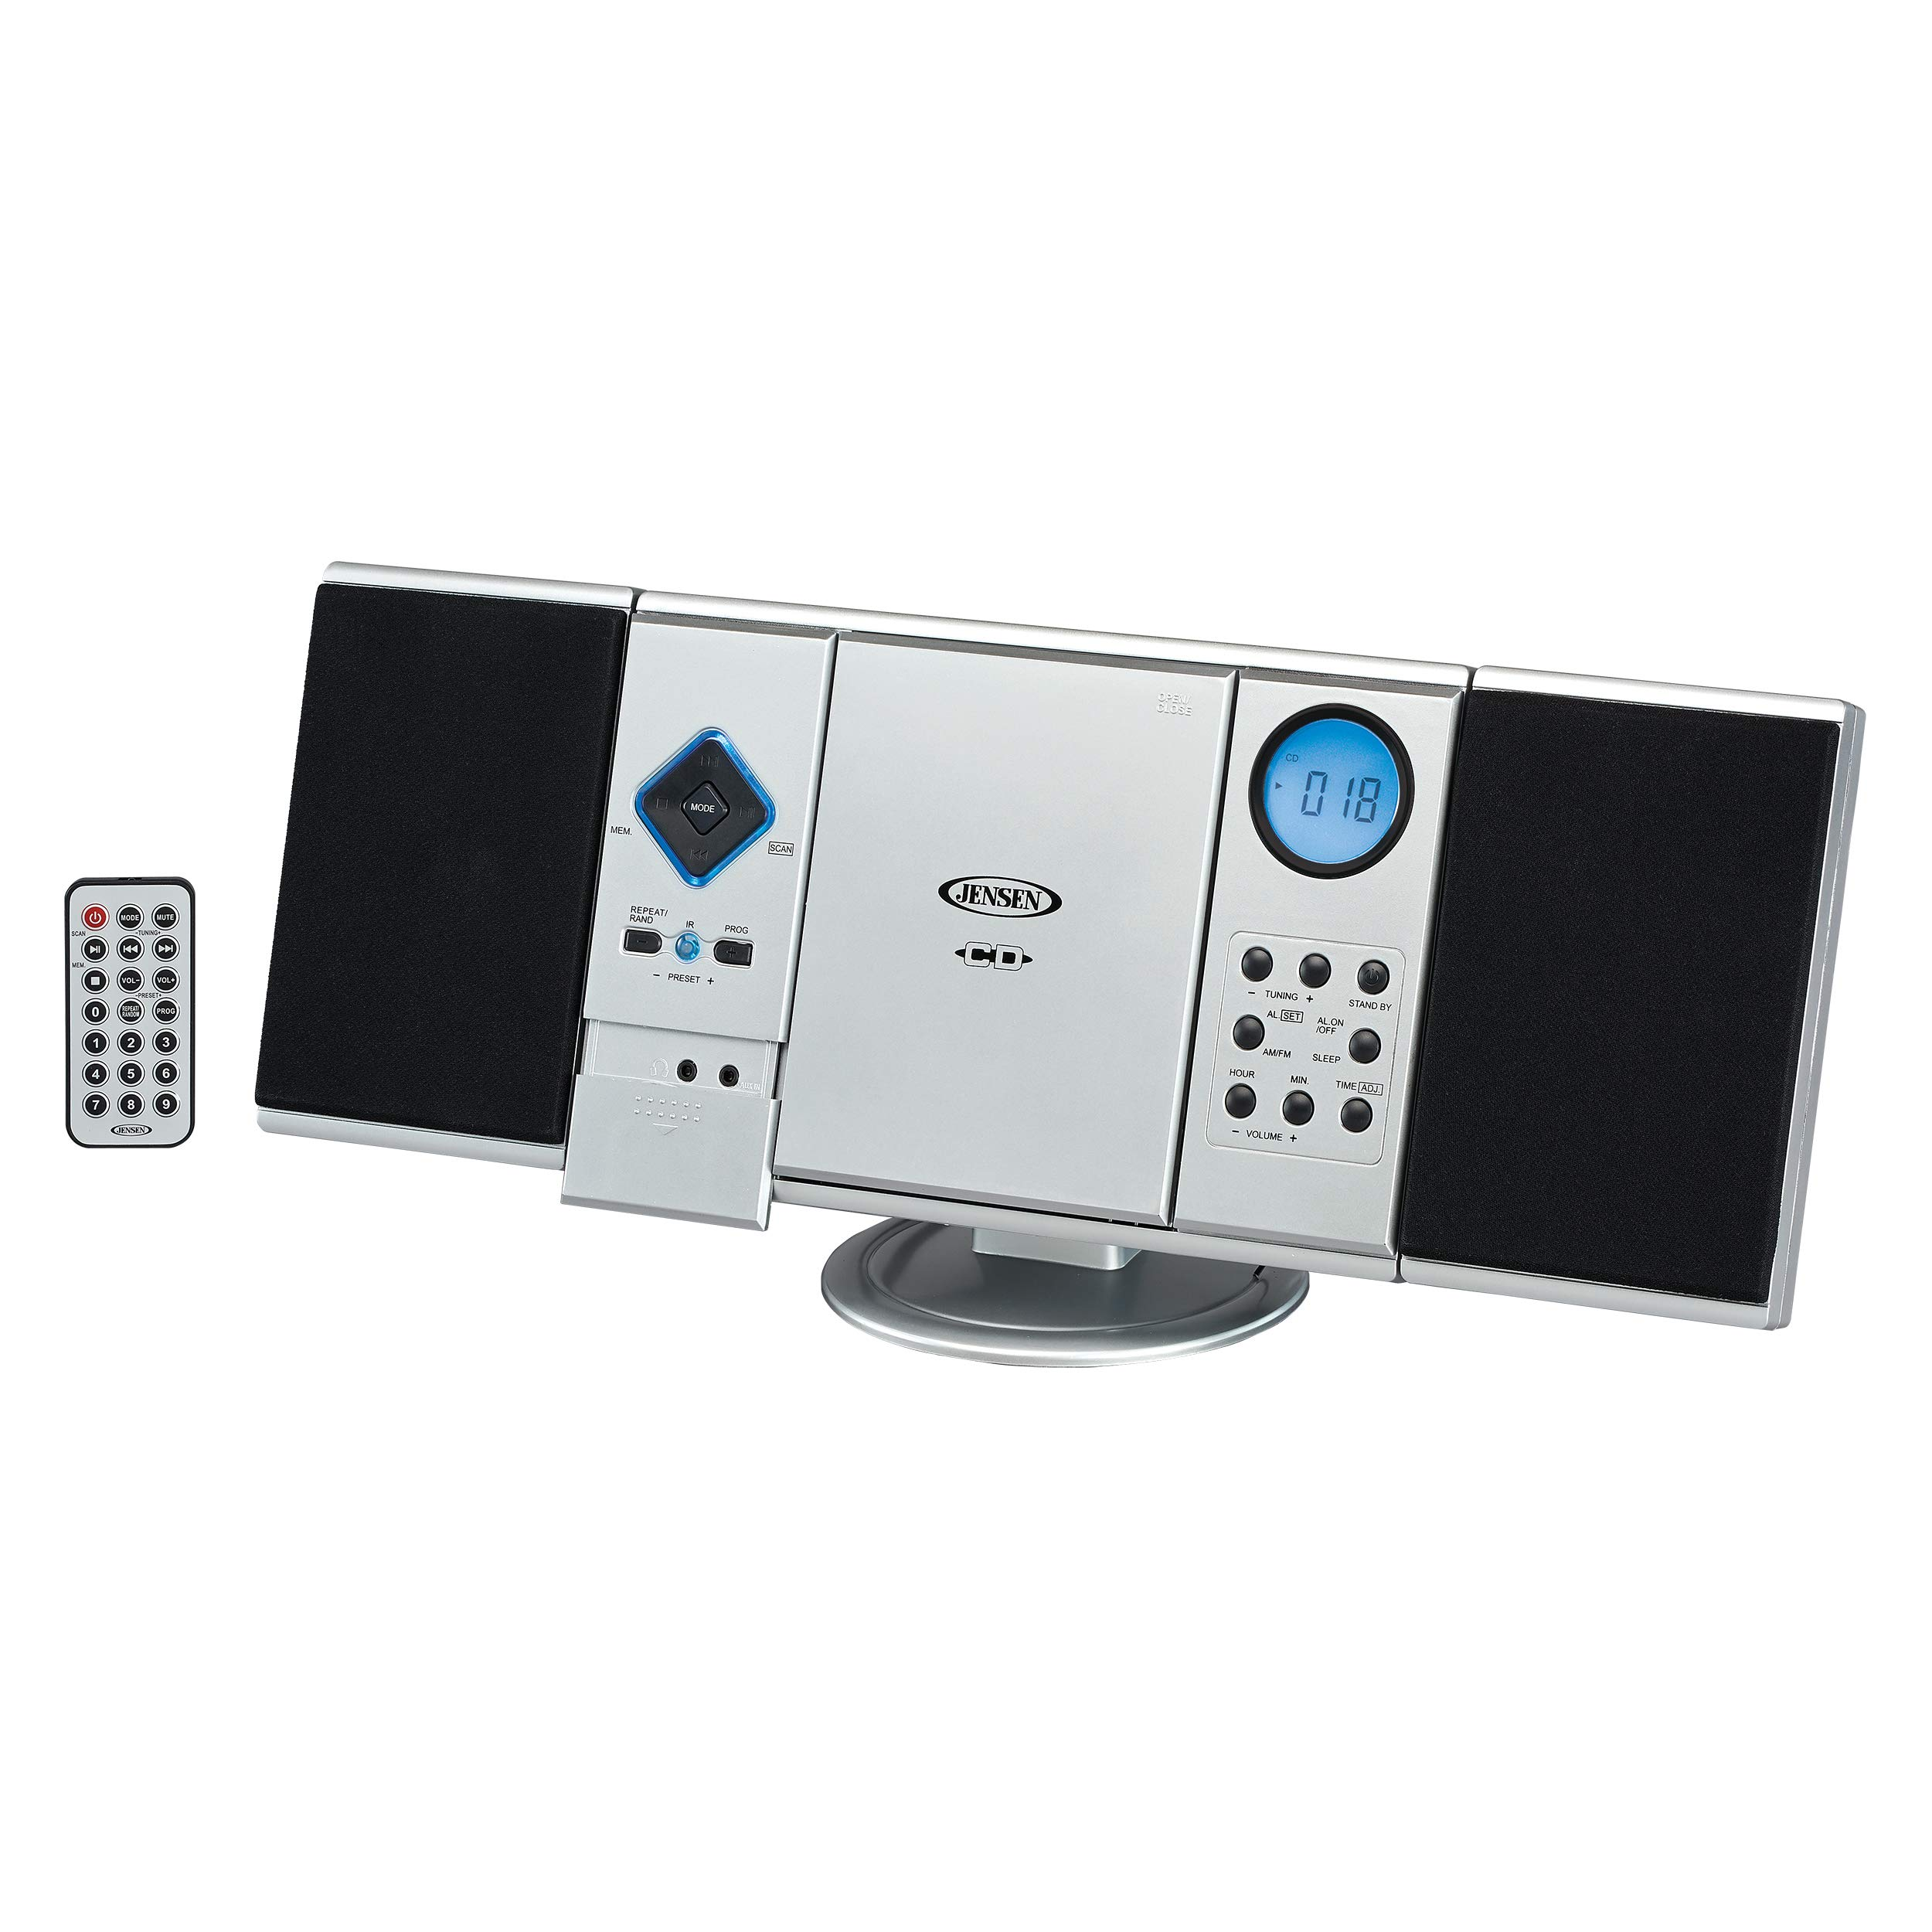 Jensen Modern Black Series JMC-180SB Wall Mountable Vertical Loading CD Music System, Digital AM/FM Stereo with Speakers, Aux-in, & Headphone Jack Remote Control (Silver) by Jensen